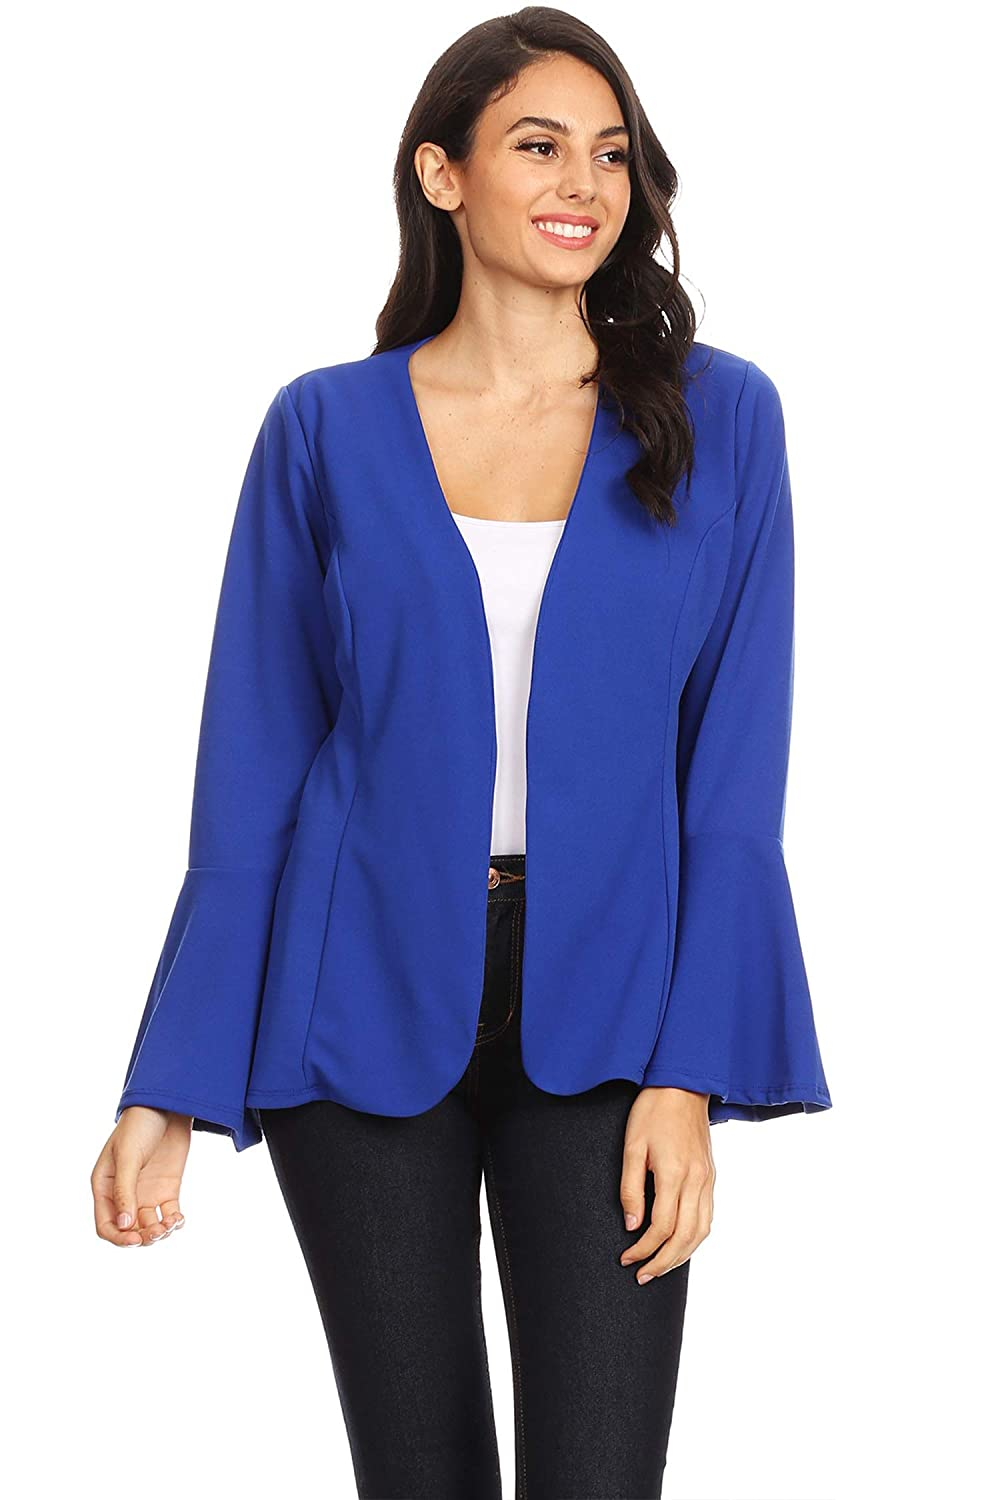 Women's Casual Solid Loose Bell Sleeve Draped Front Blazer Cardigan/Made in USA